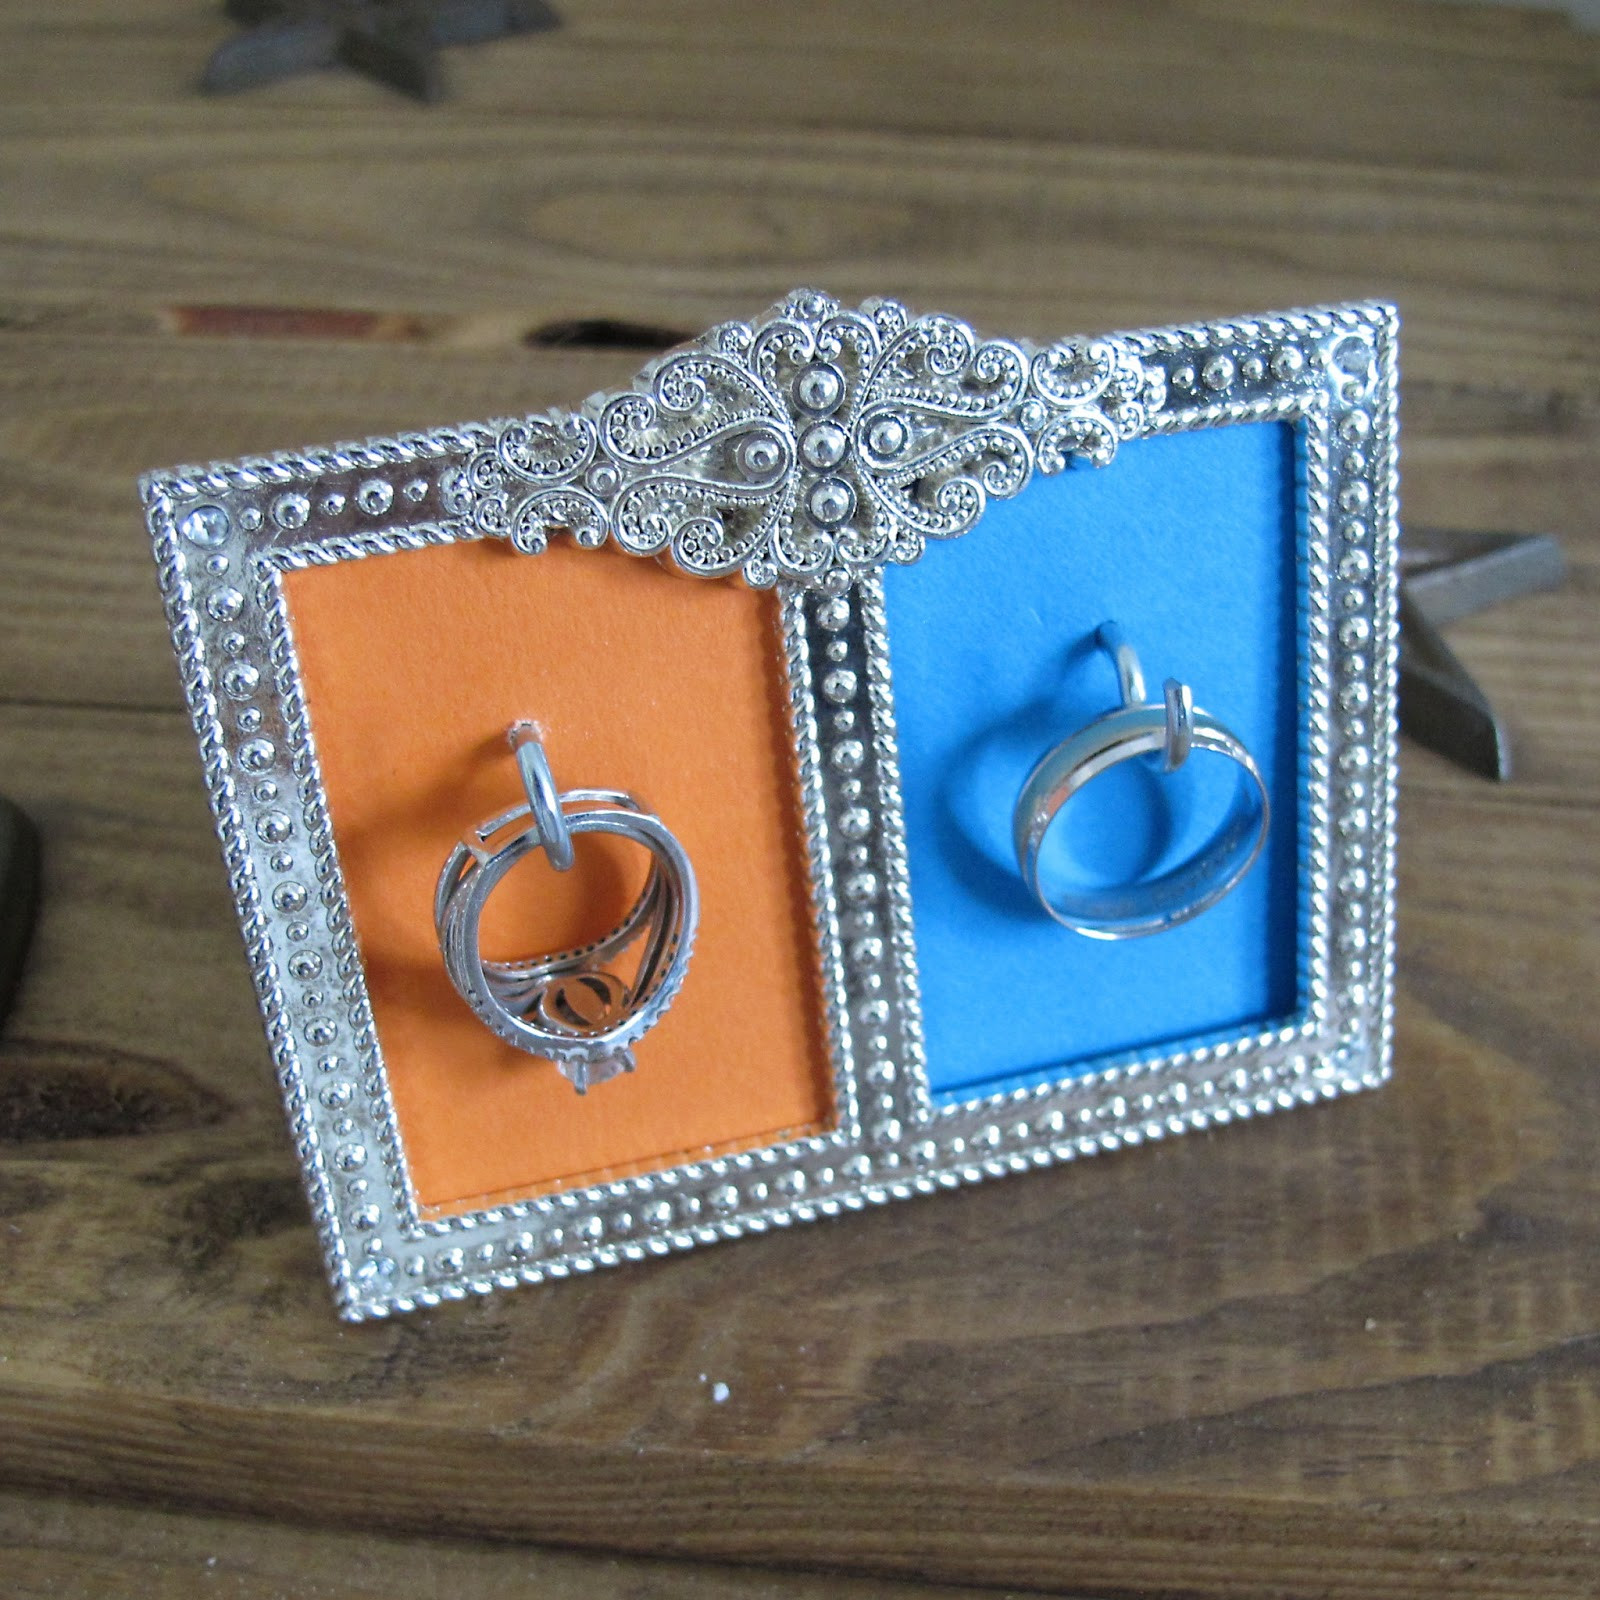 Best ideas about DIY Wedding Ring . Save or Pin Rants of A Quirky Girl DIY Wedding Ring Framed Holder Now.